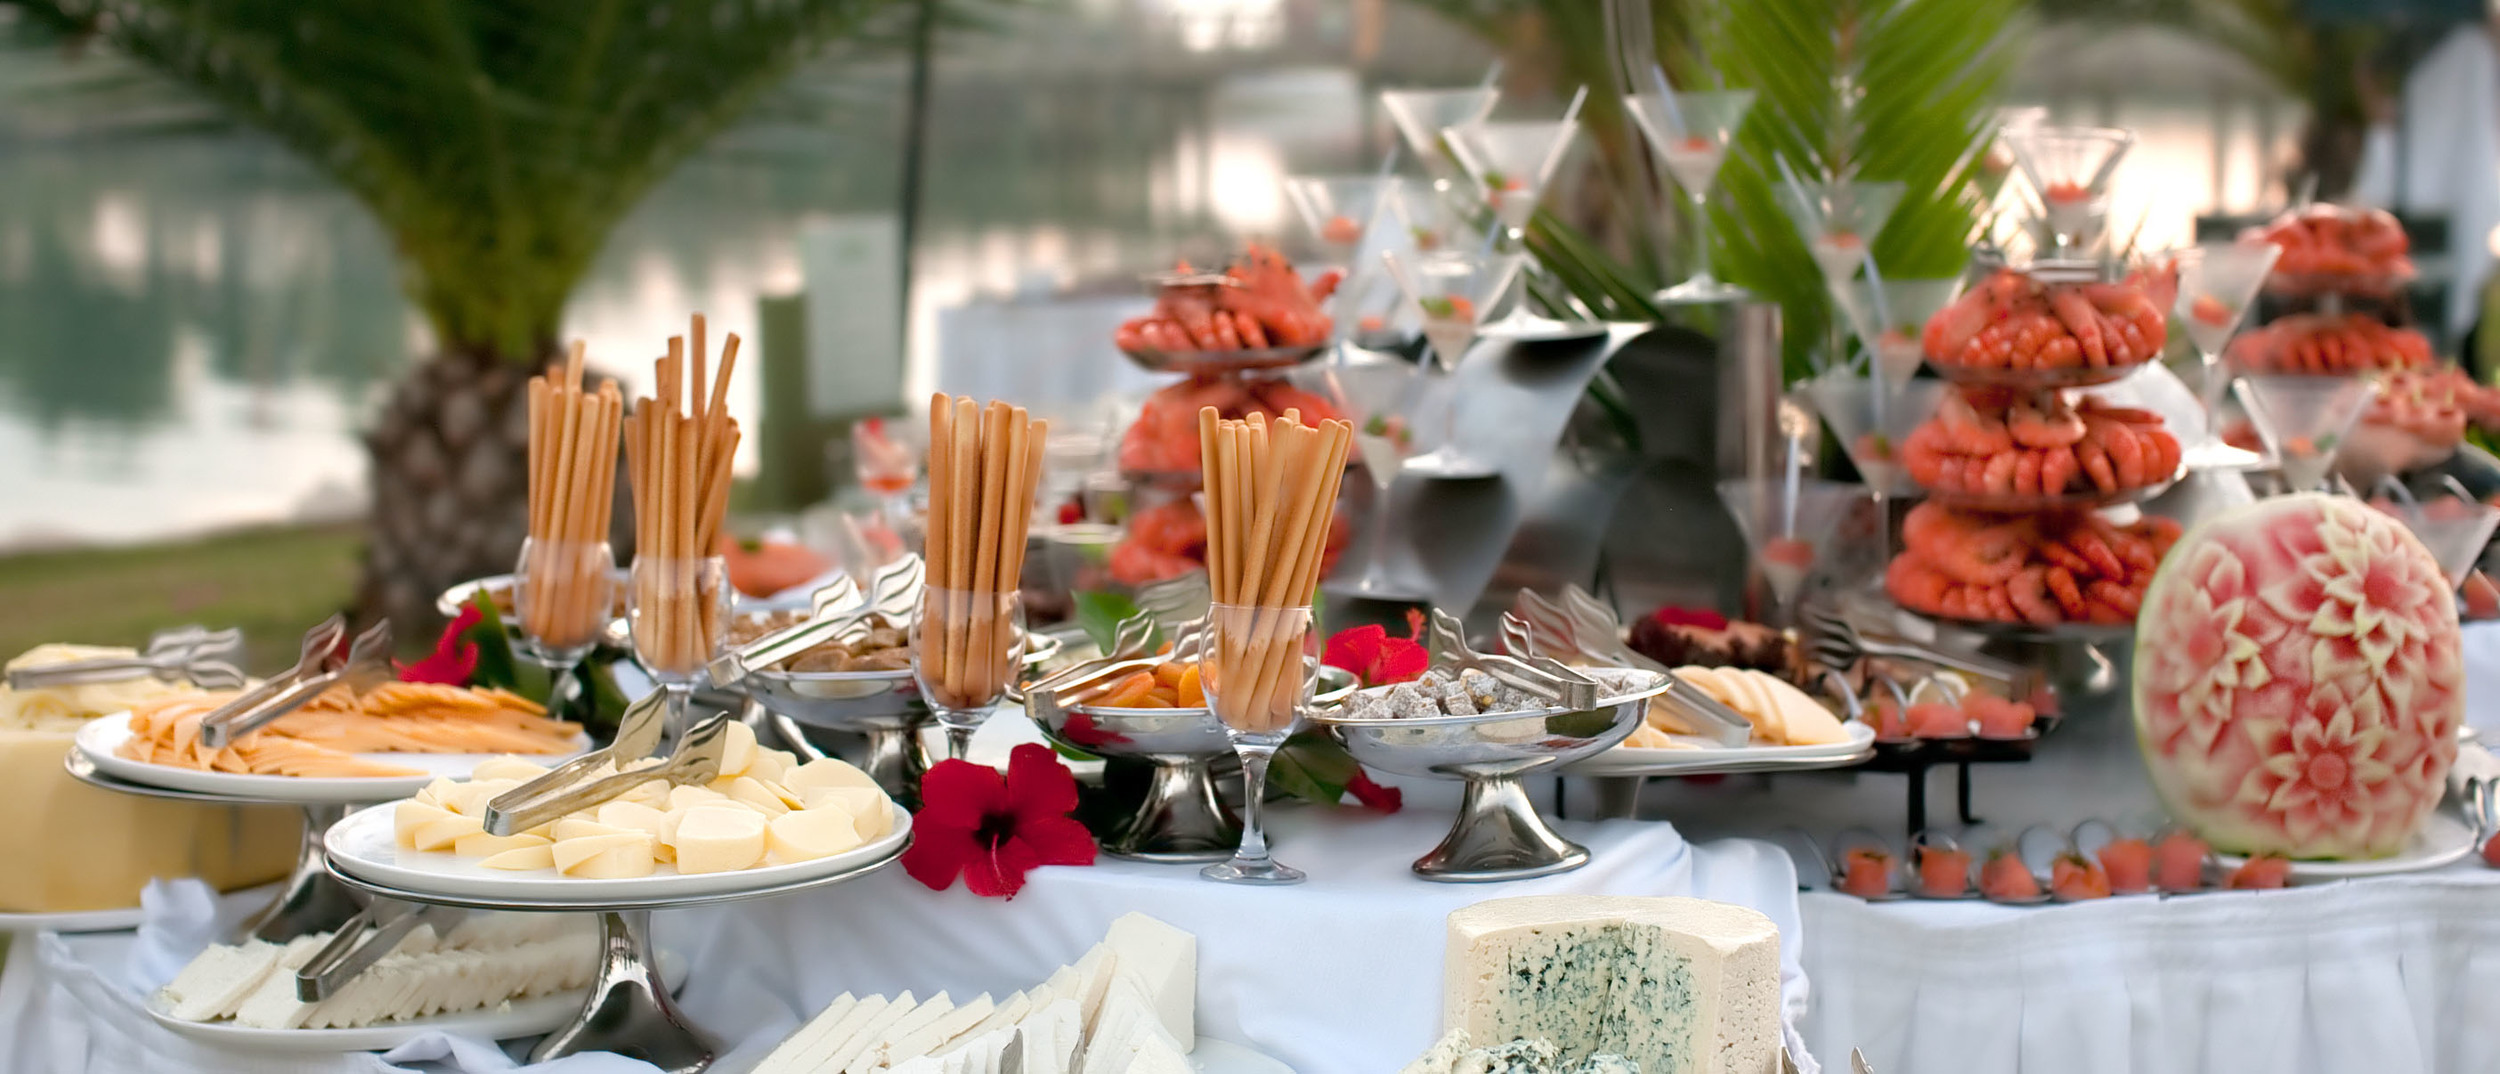 wedding catering dallas.jpg